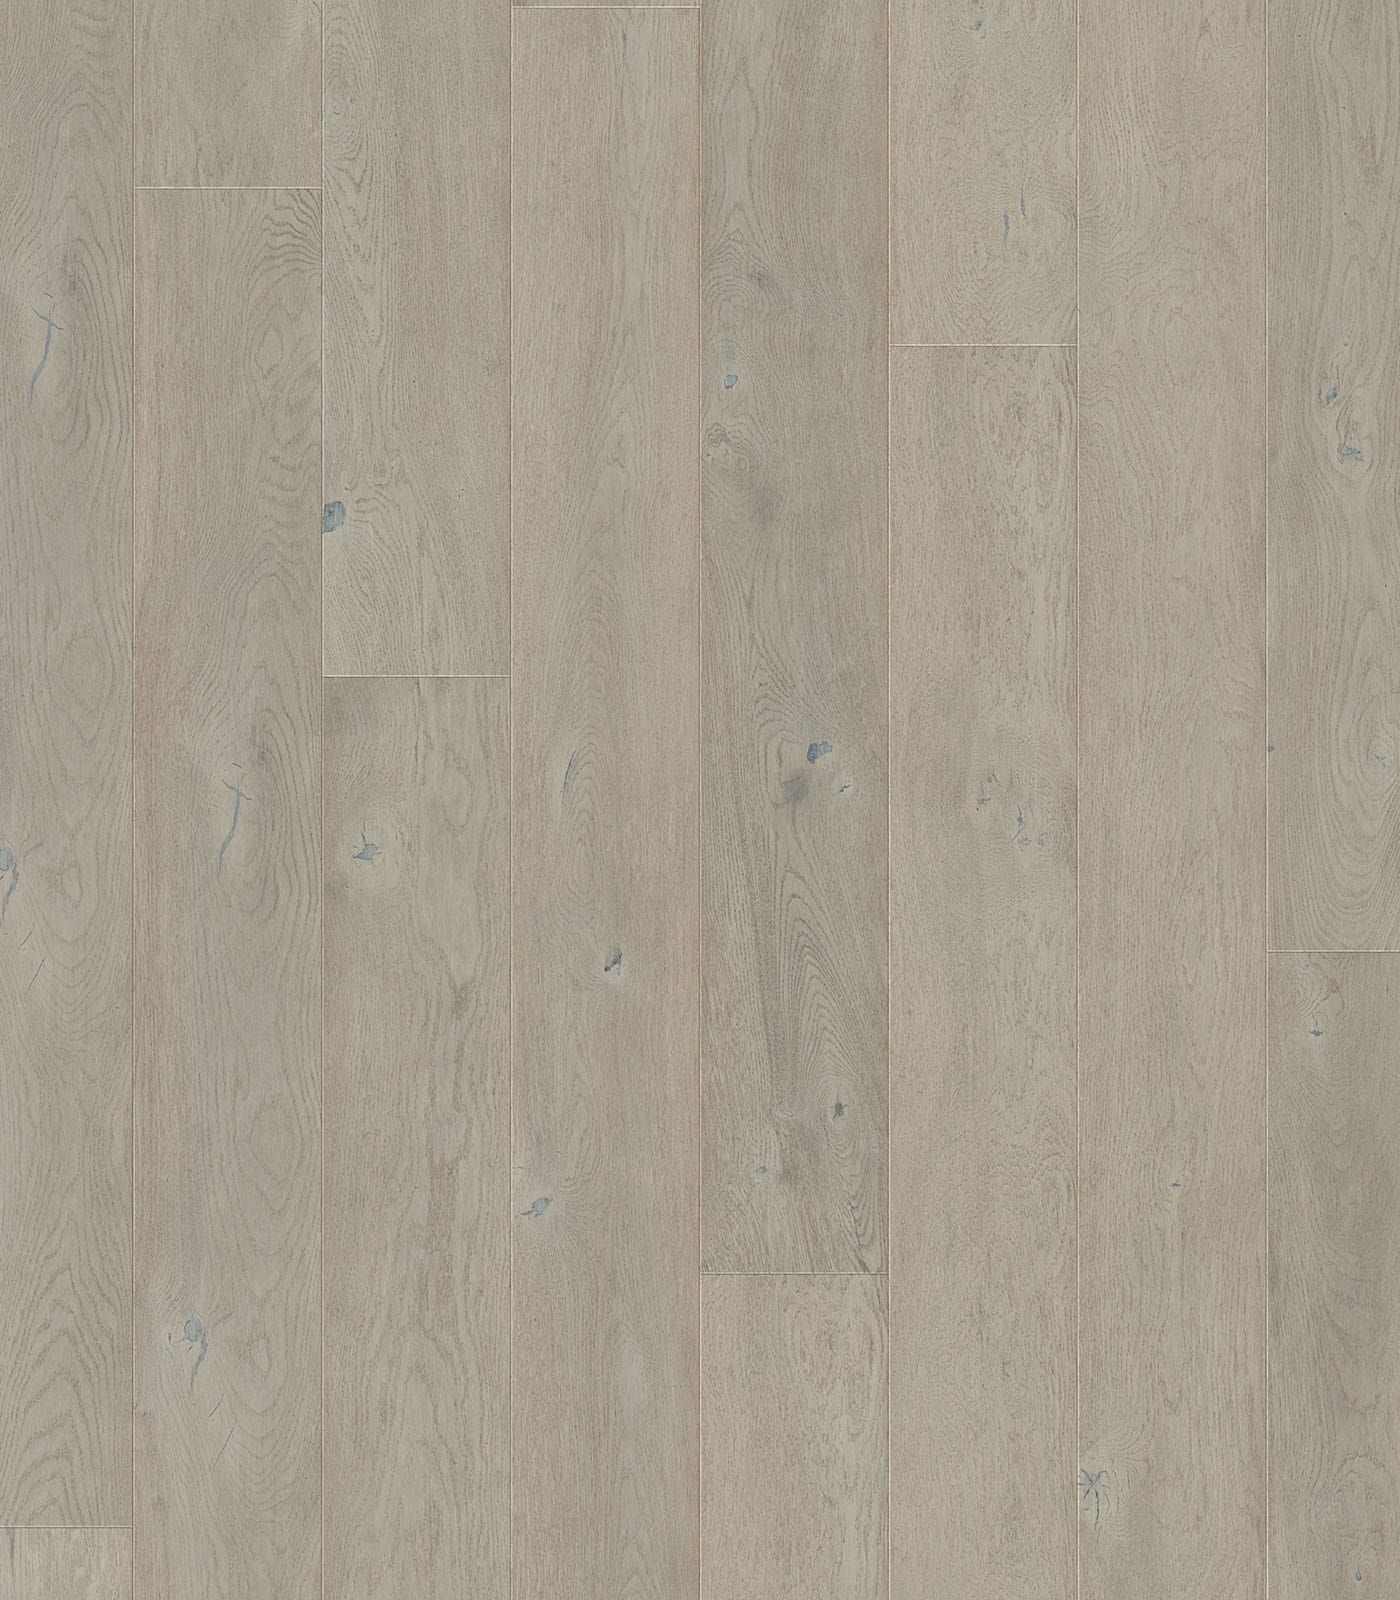 Zanzibar-European Oak Floors-Lifestyle Collection-flat